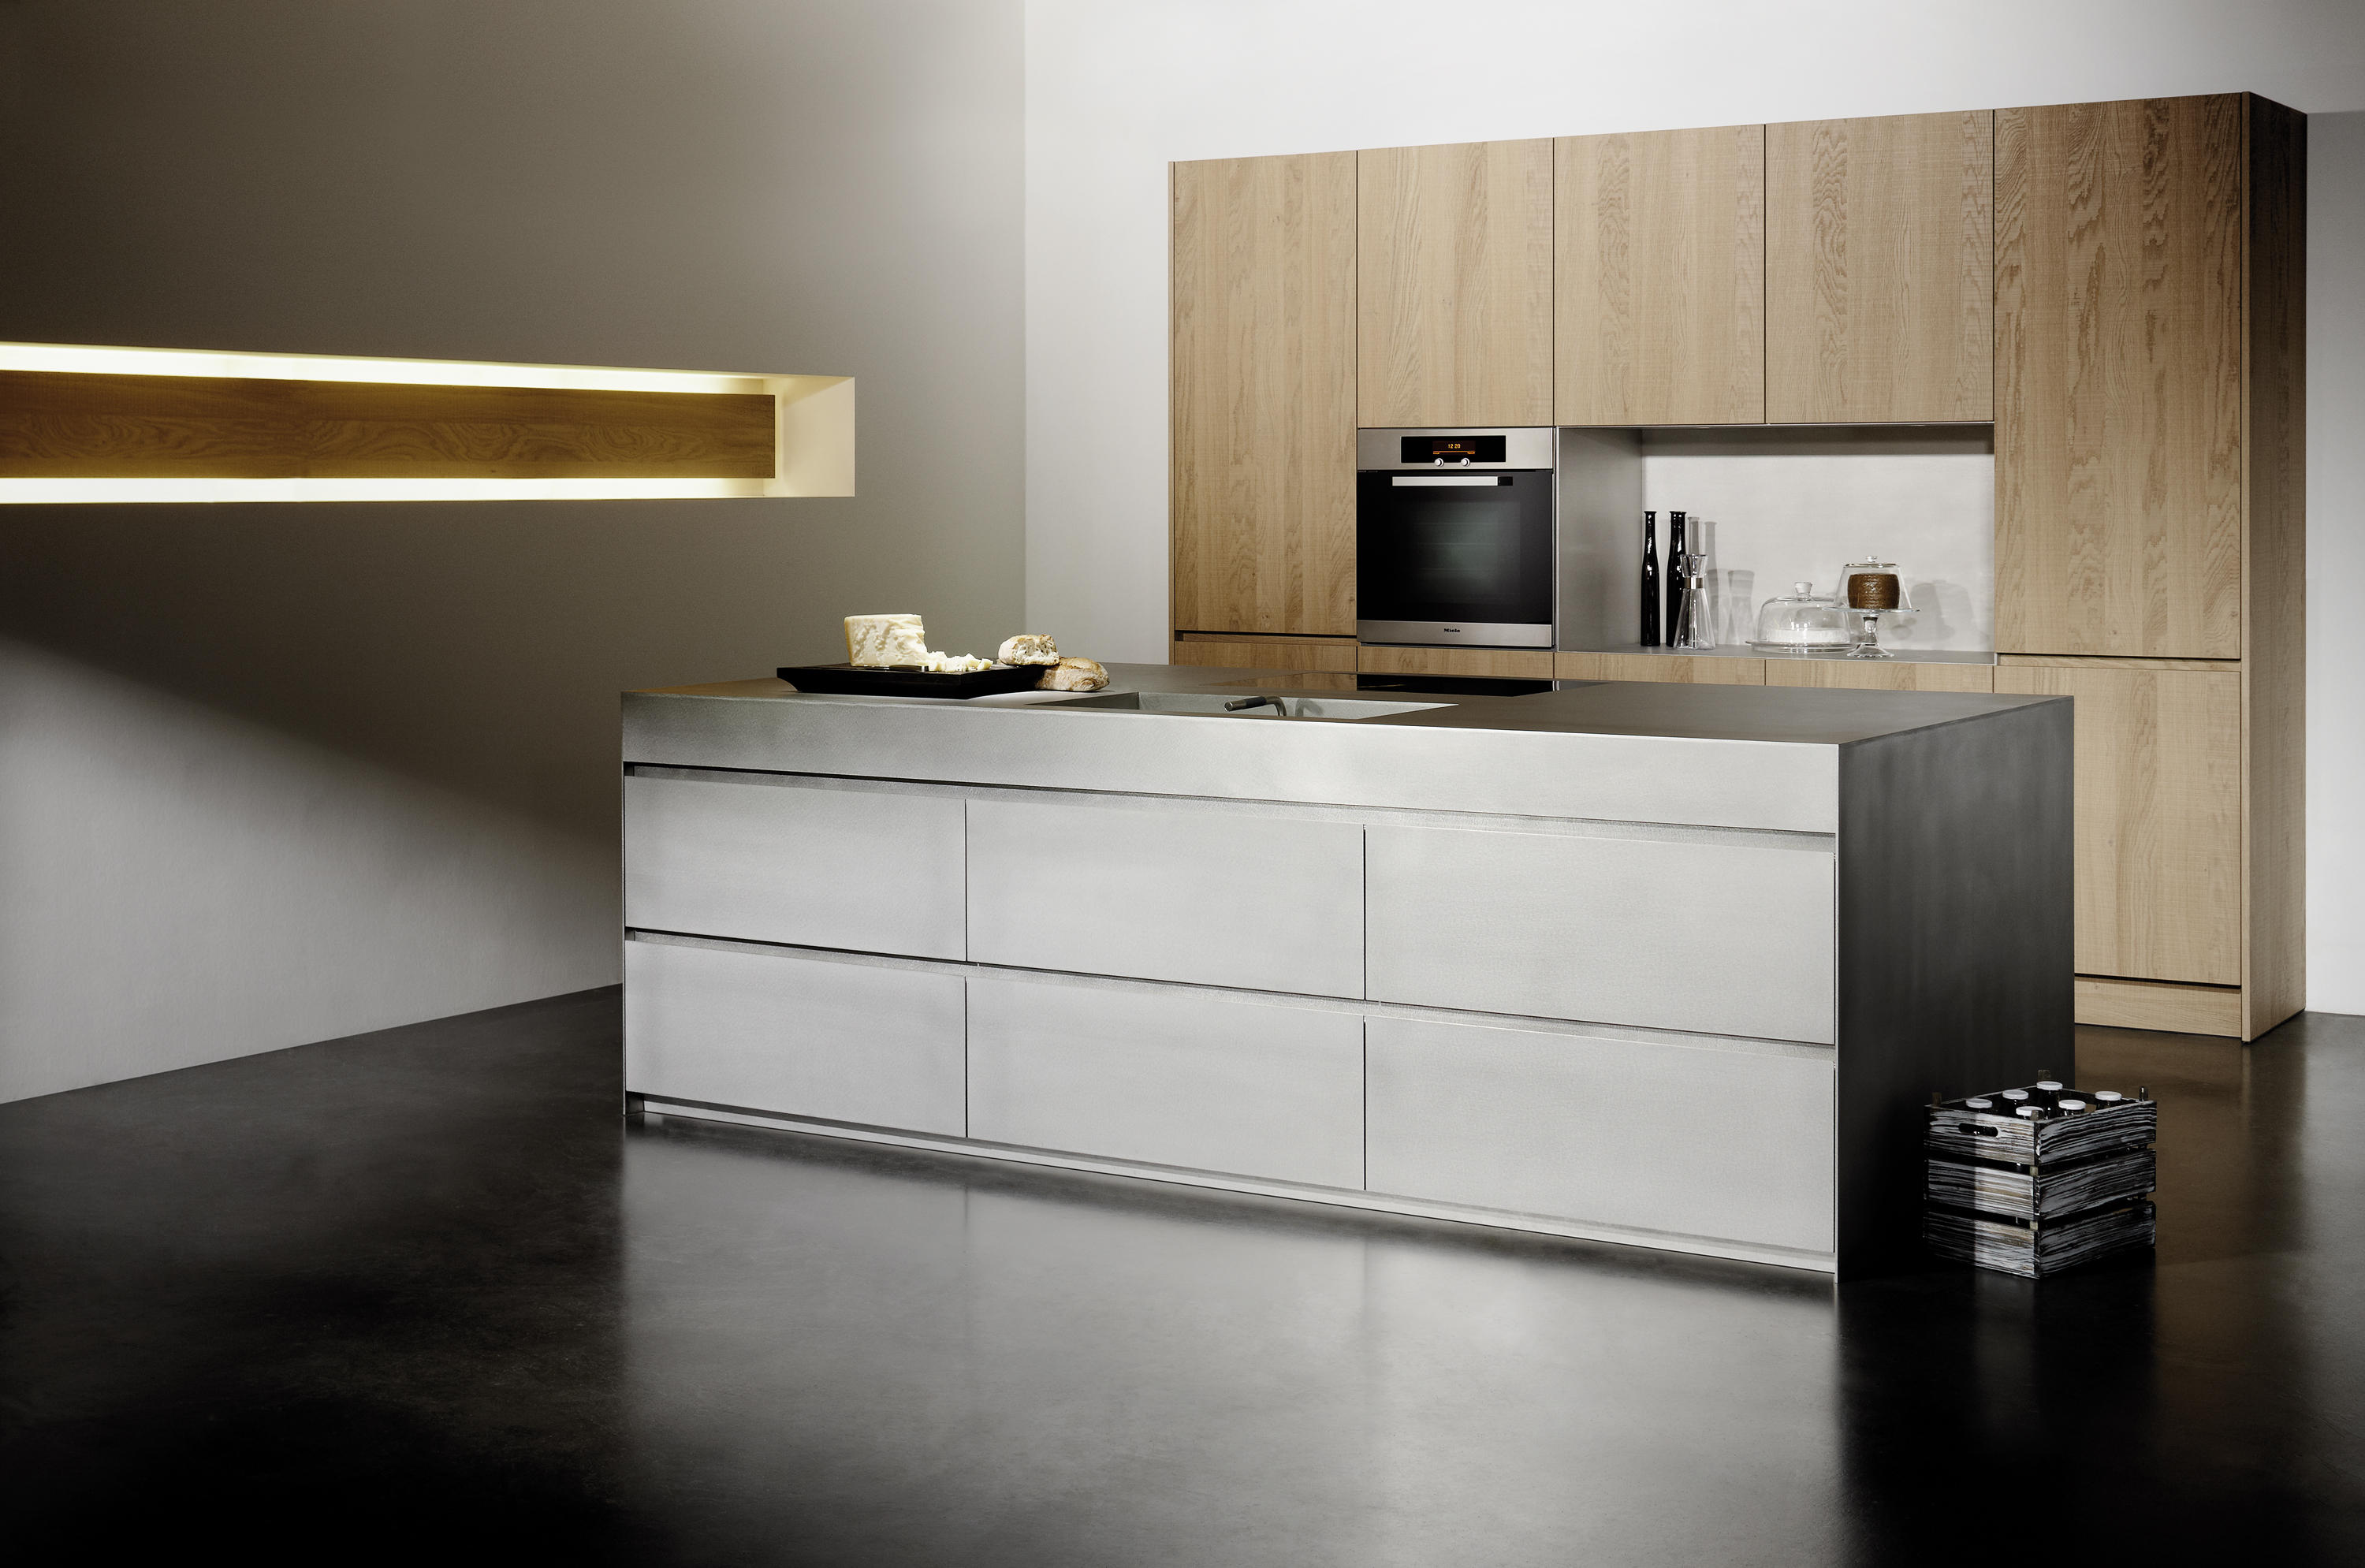 Eggersmann Outdoor Küche Silver Touch Island Kitchens From Eggersmann Architonic